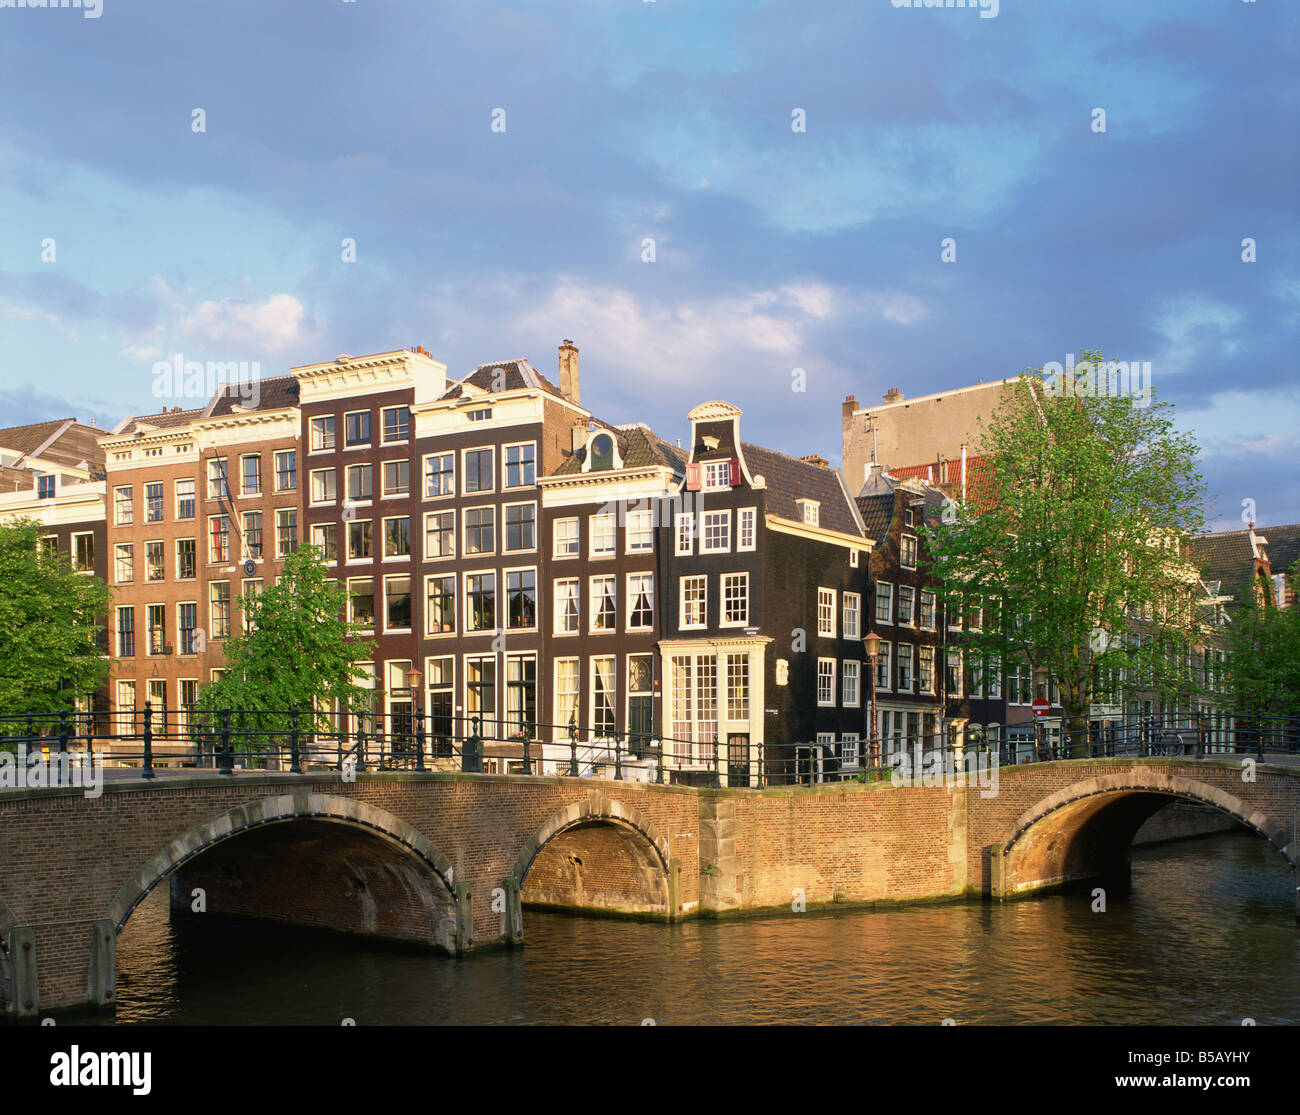 The Keizersgracht and Reguliergracht canal and bridges in Amsterdam Holland N Francis - Stock Image